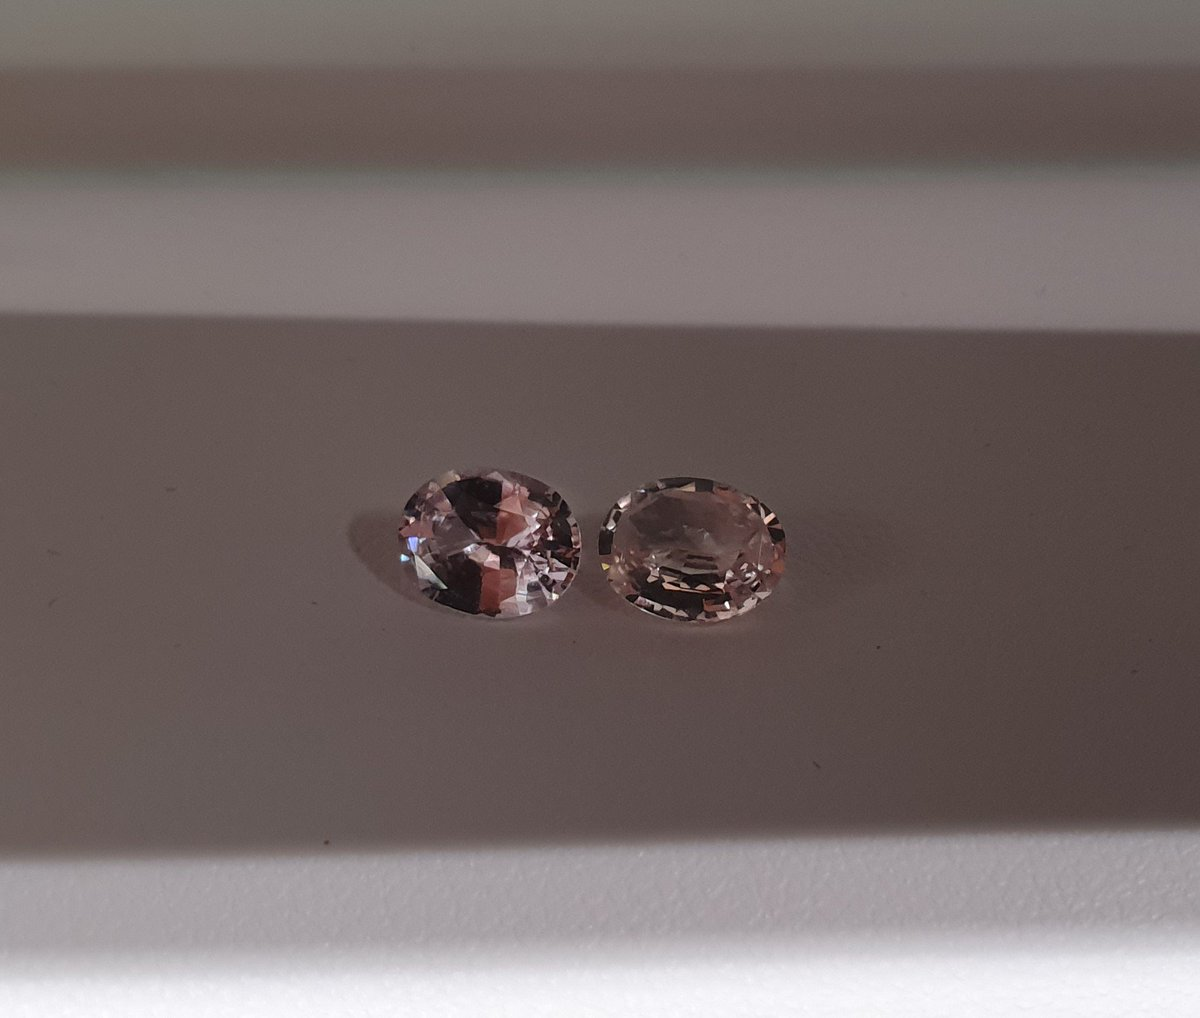 https://www.instagram.com/p/BvZkGPen7RR/  We are the leading supplier of coloured gems. Here are 2 beautiful 1.25ct unheated Ceylon sapphires. Visit our website for more info.  #LondonDE #LDE #Ceylonsapphire #peachsapphire @londondande #SriLankasapphire #emerald #emeralds #sapphire #Padparadschapic.twitter.com/wElrhh1f4I